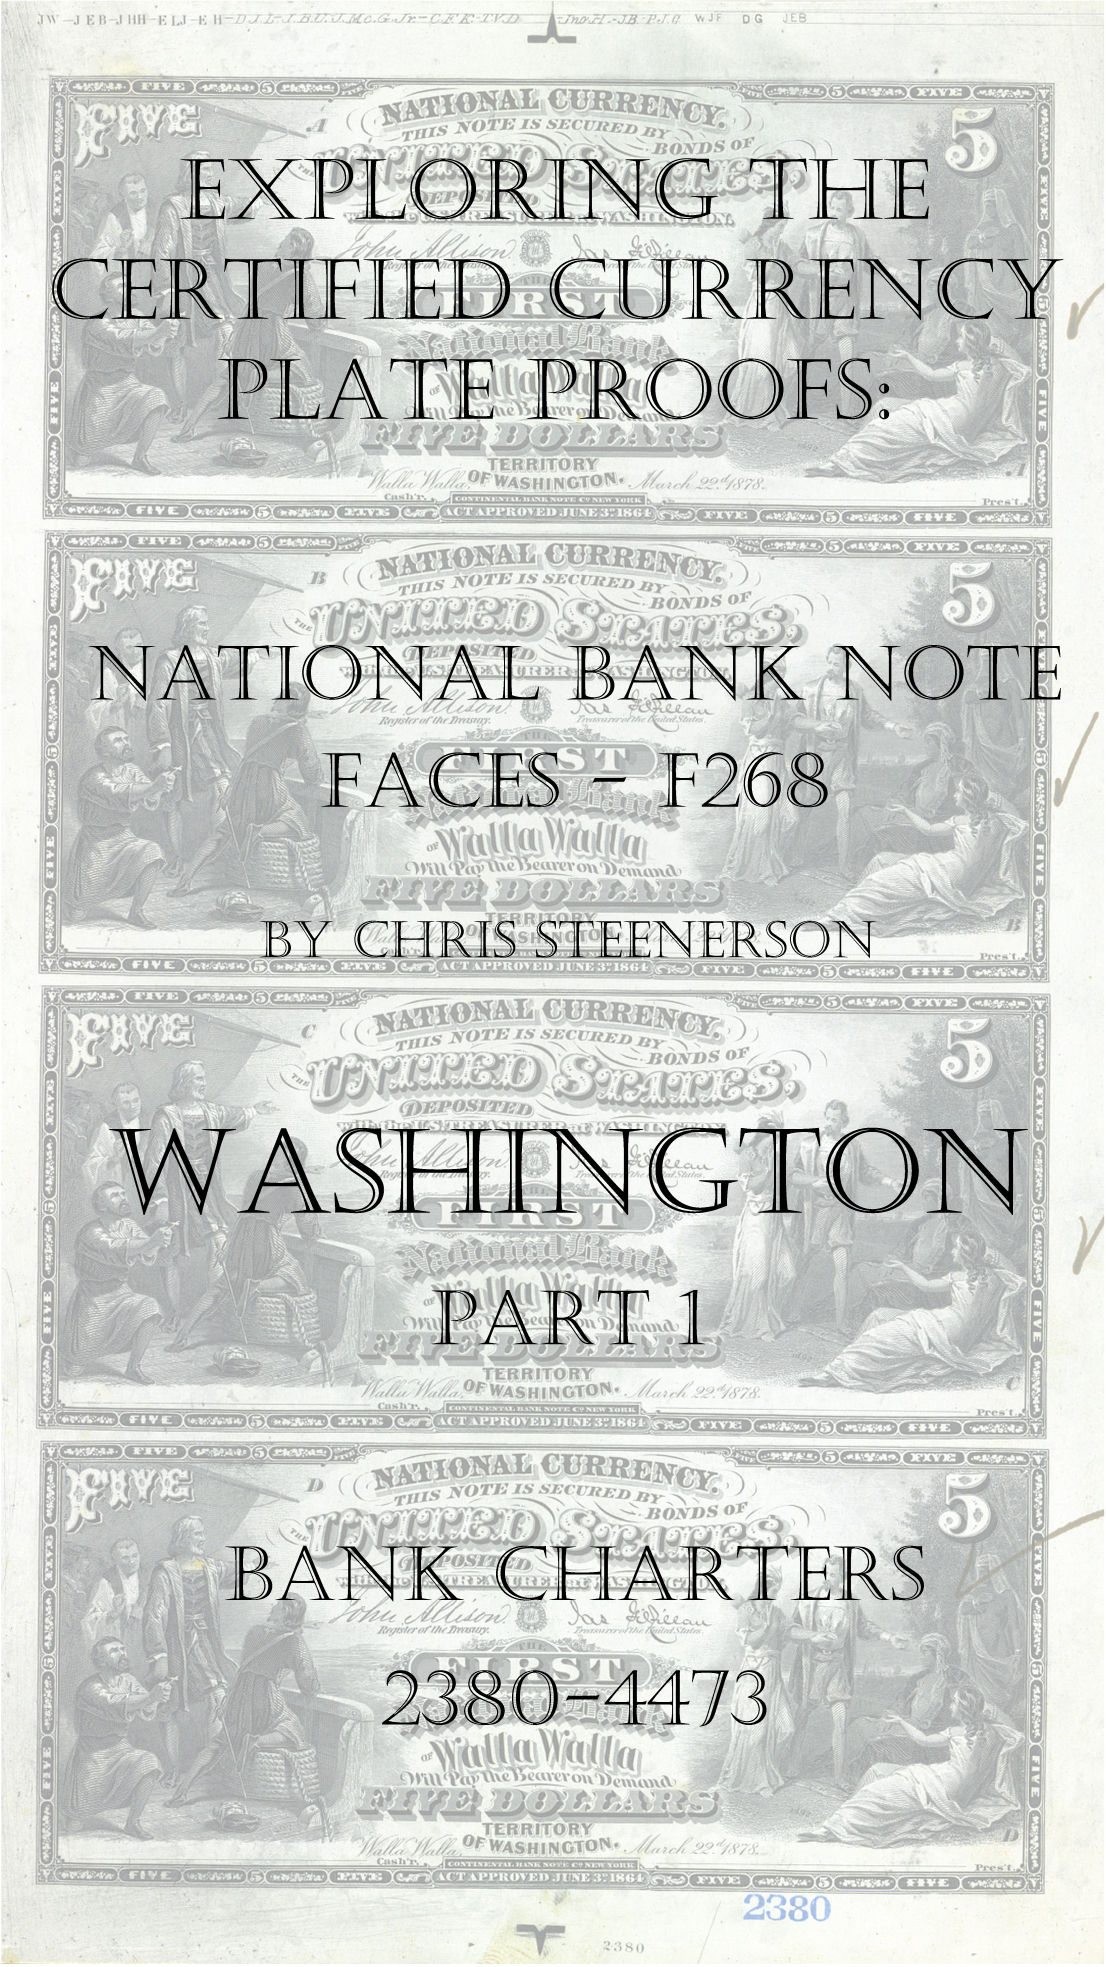 Washington National Bank Note Currency Proofs